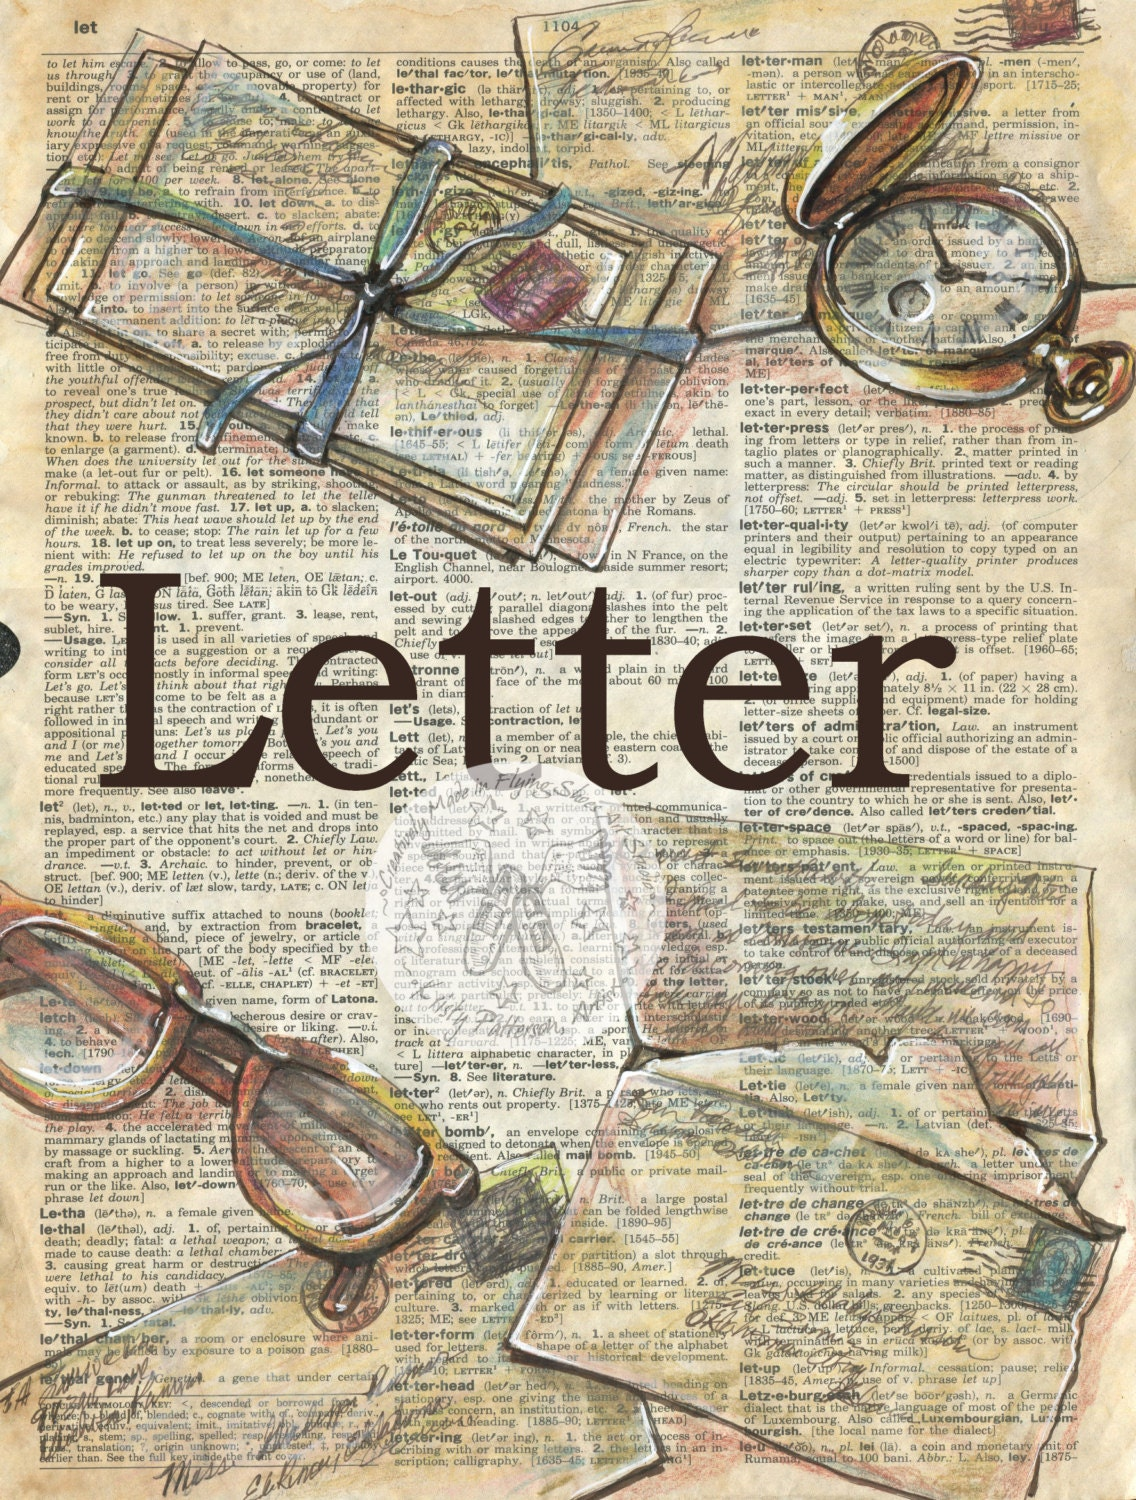 riot letters on antique poster stock photos image 35329363 print letter mixed media drawing on antique dictionary 124